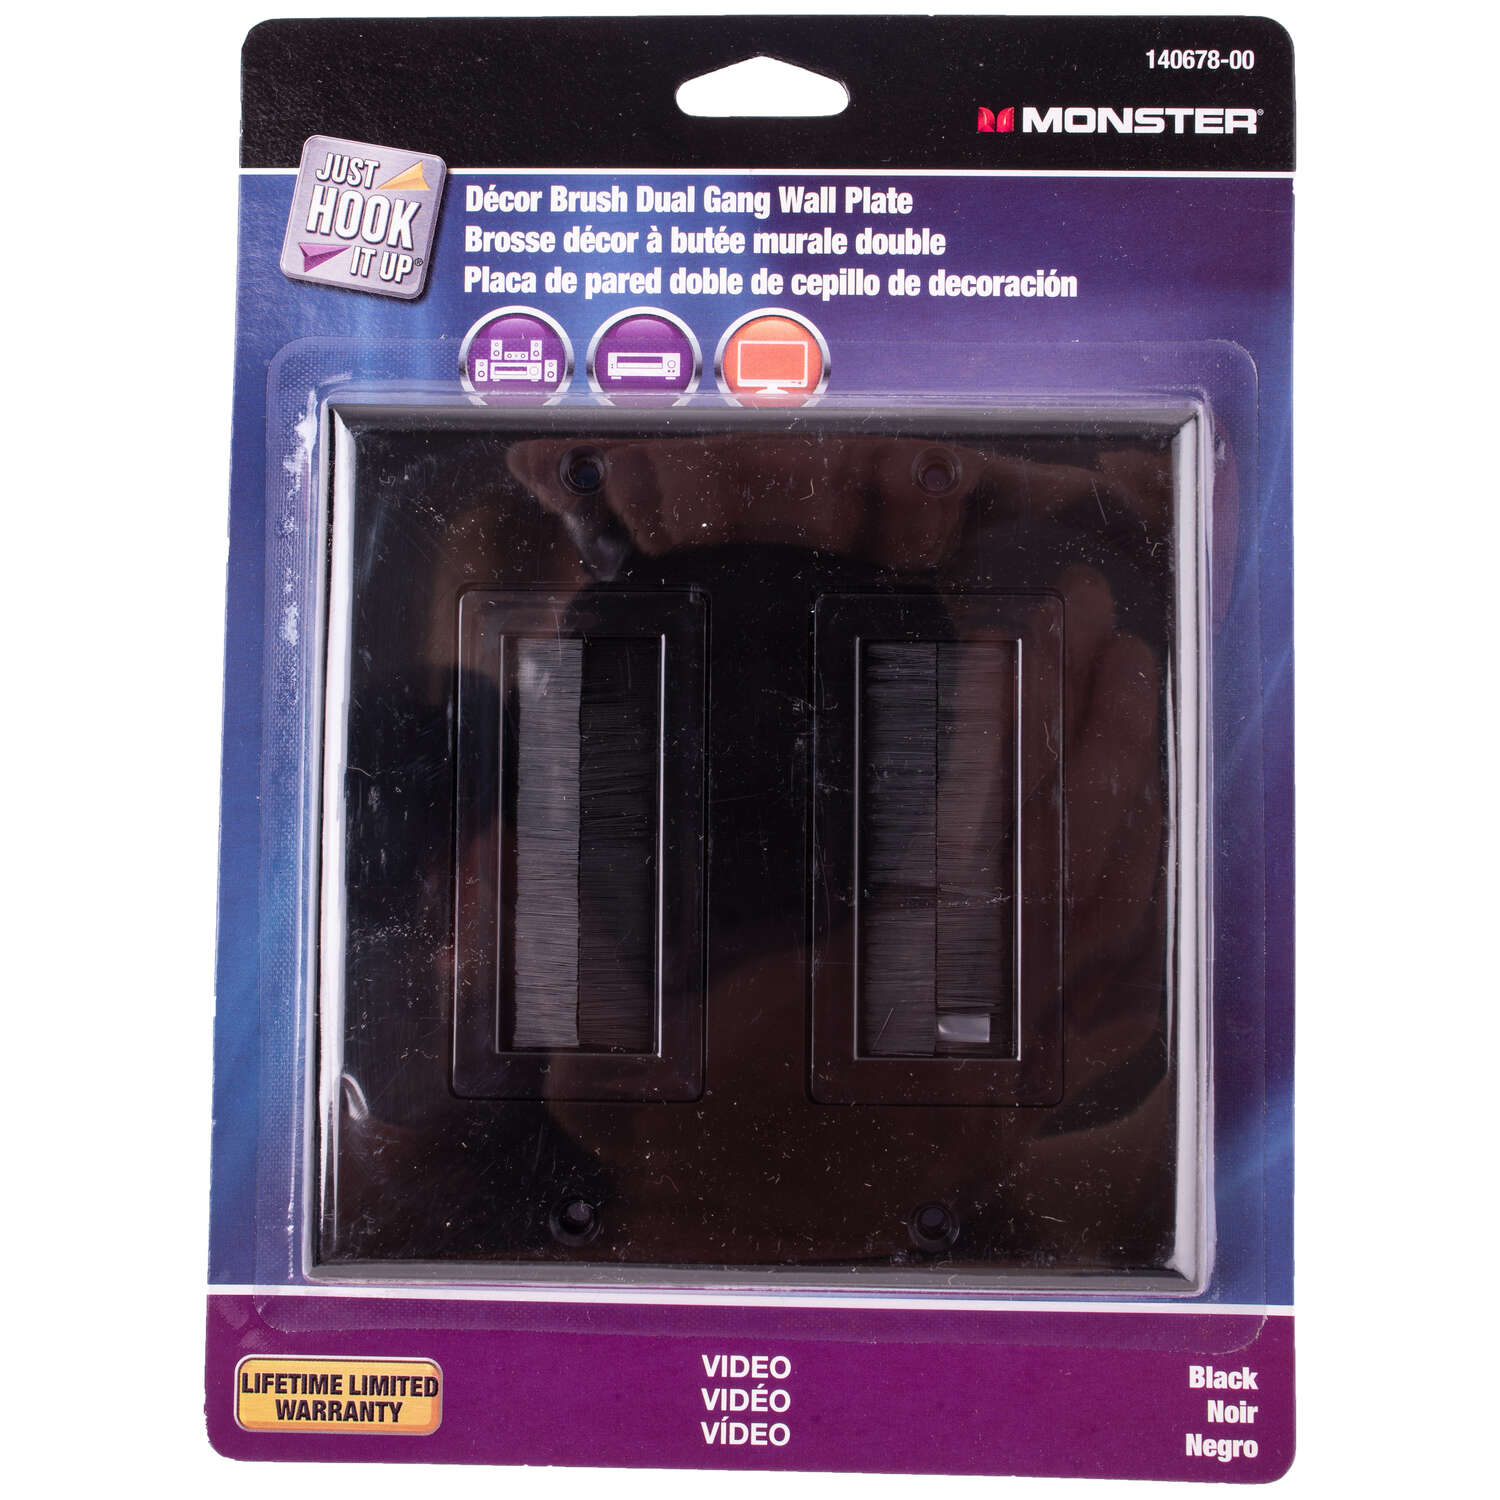 Monster Cable  Just Hook It Up  Black  2 gang Plastic  Home Theater  Brush Wall Plate  1 each